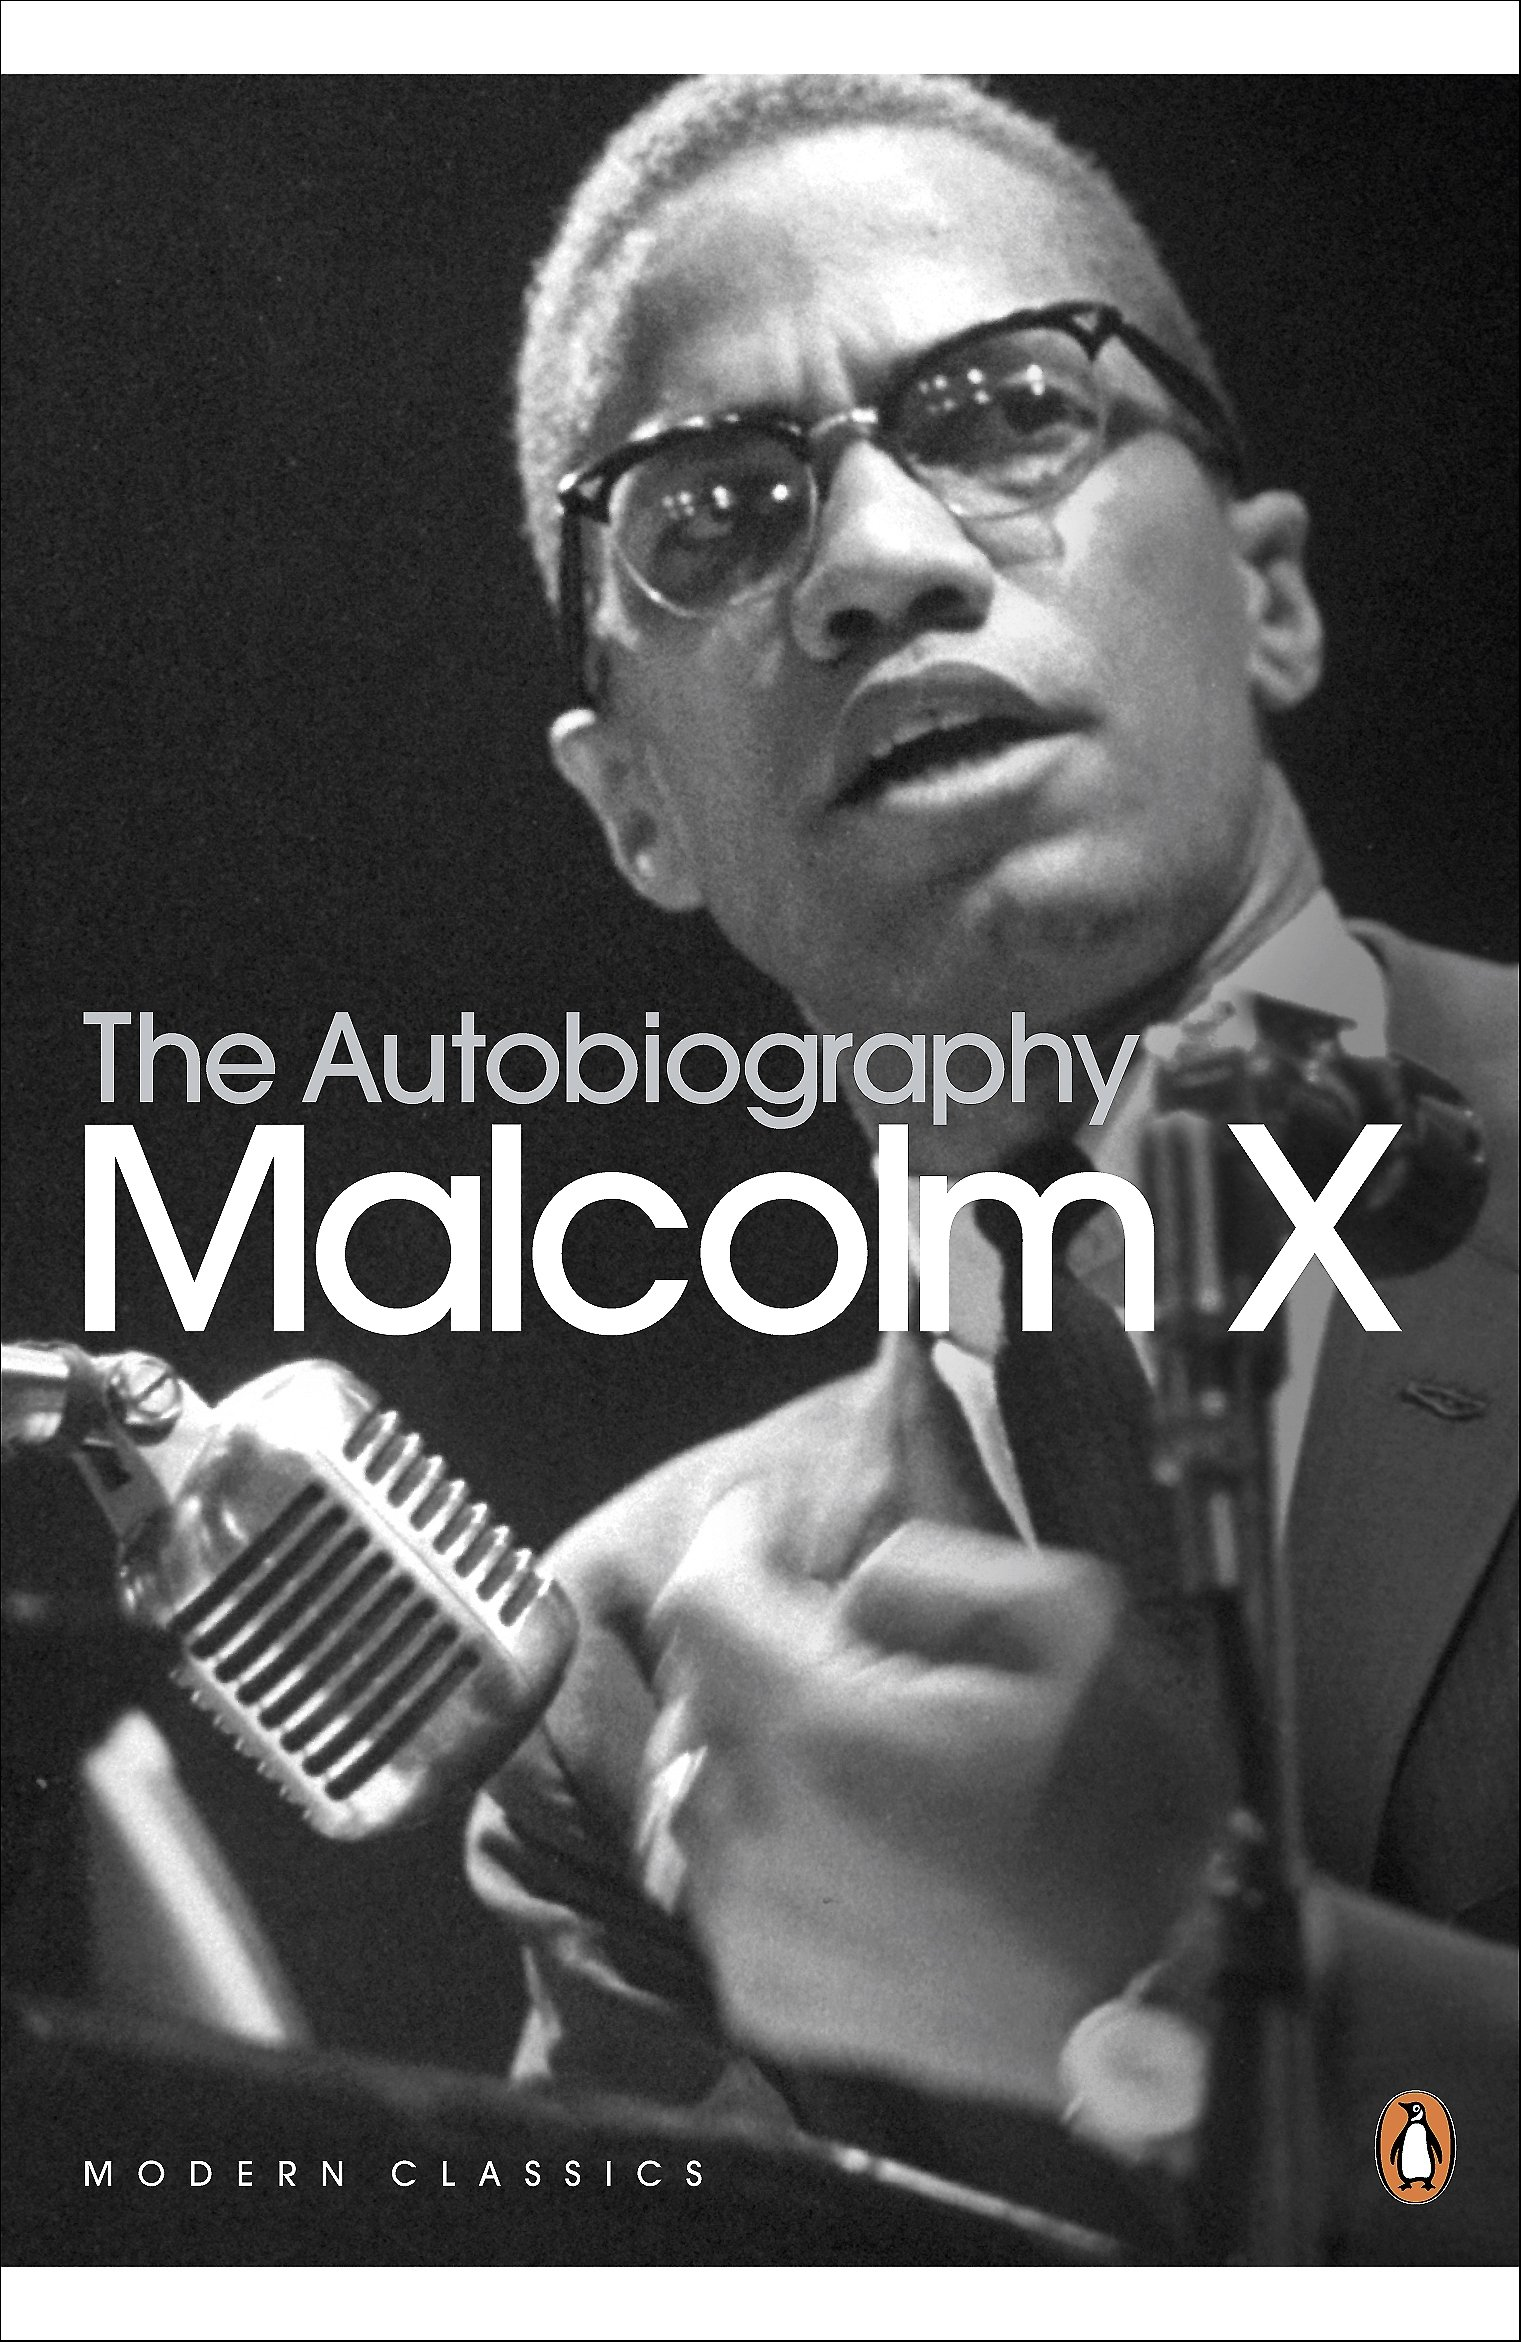 the autobiography of malcolm x penguin modern classics  the autobiography of malcolm x penguin modern classics co uk alex haley malcolm x paul gilroy 9780141185439 books